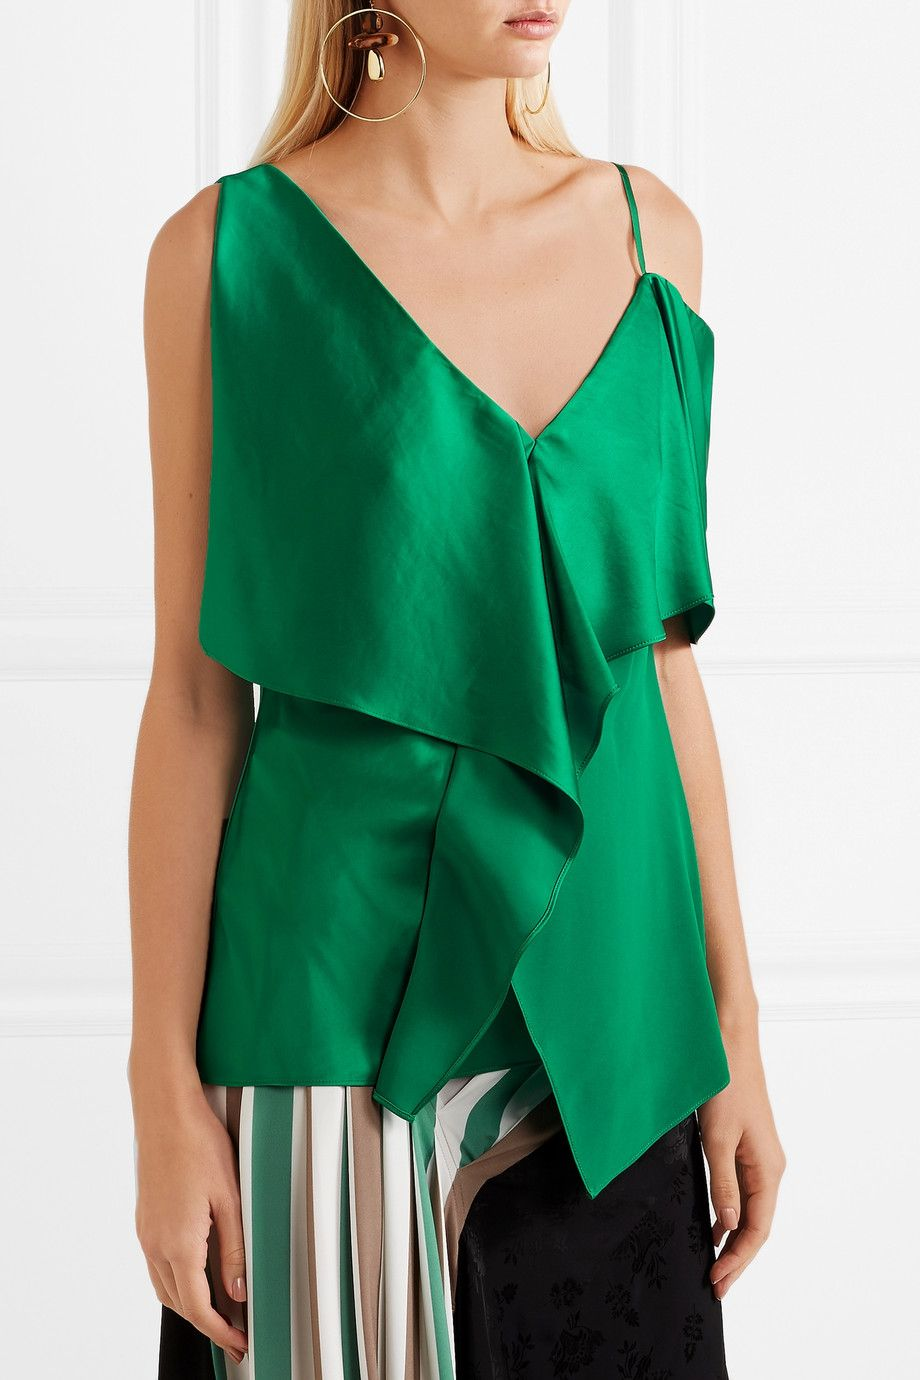 Asymmetric Ruffled Satin Top - Green Diane Von Fürstenberg Affordable Cheap Price 2018 Cool Shopping Outlet Pay With Visa T3h19DZ4